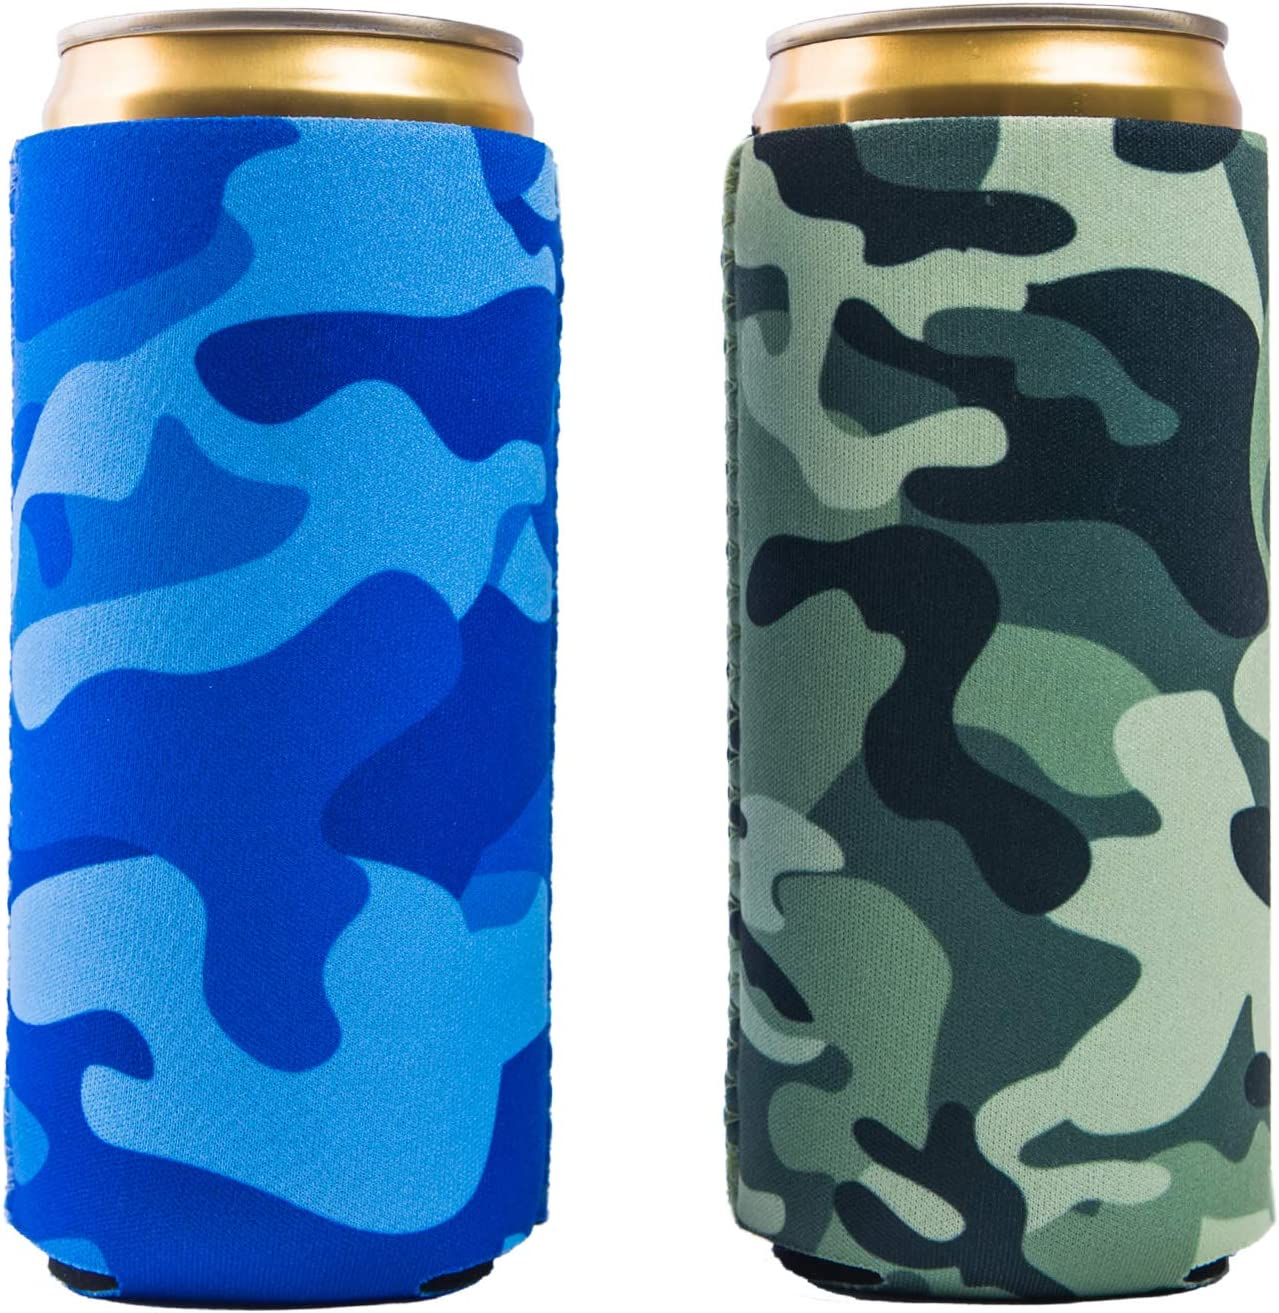 Slim Can Sleeves - Neoprene Bottle Insulator Sleeve Set of 2 Can Beverage Coolers for 12oz Energy Drink & Beer Cans (Camouflage)